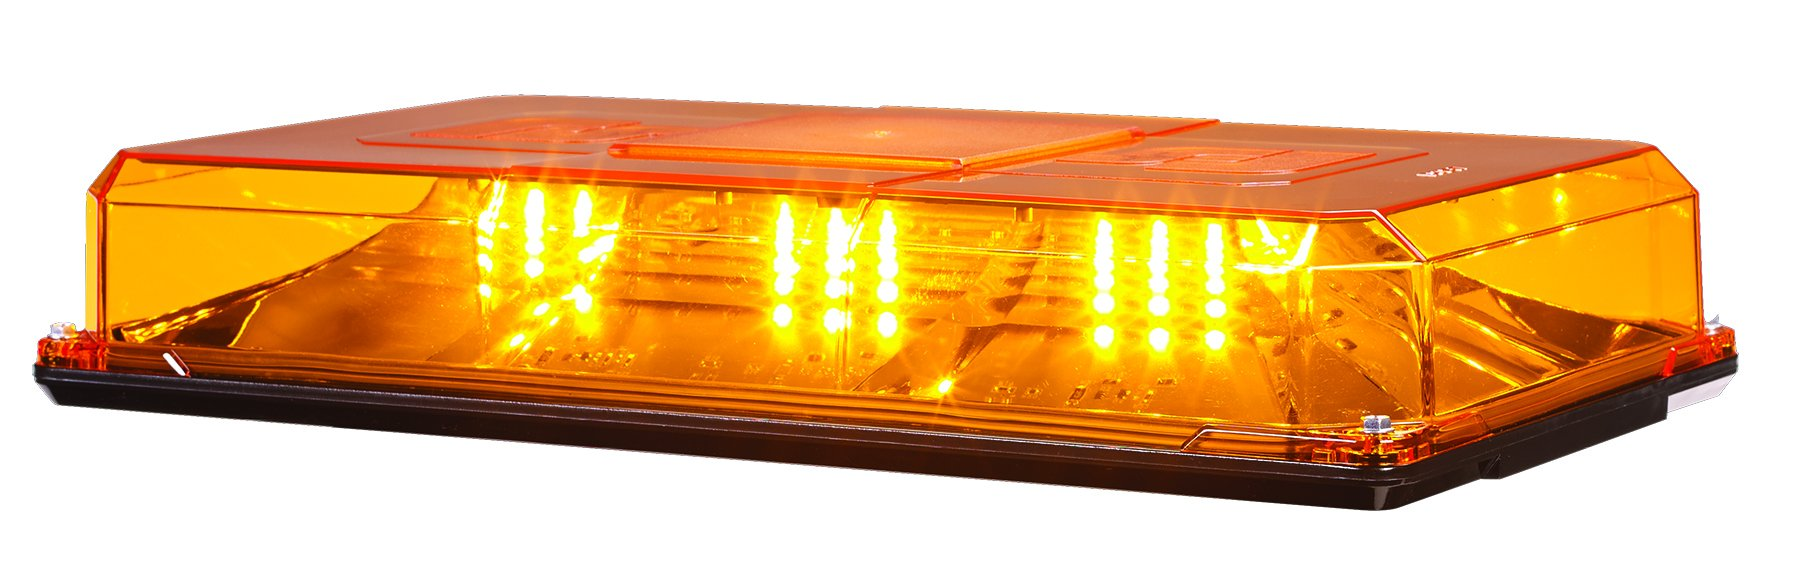 Federal Signal 454102HL-02 HighLighter LED Mini-Lightbar with Magnetic Mount, Amber  Dome/LEDs